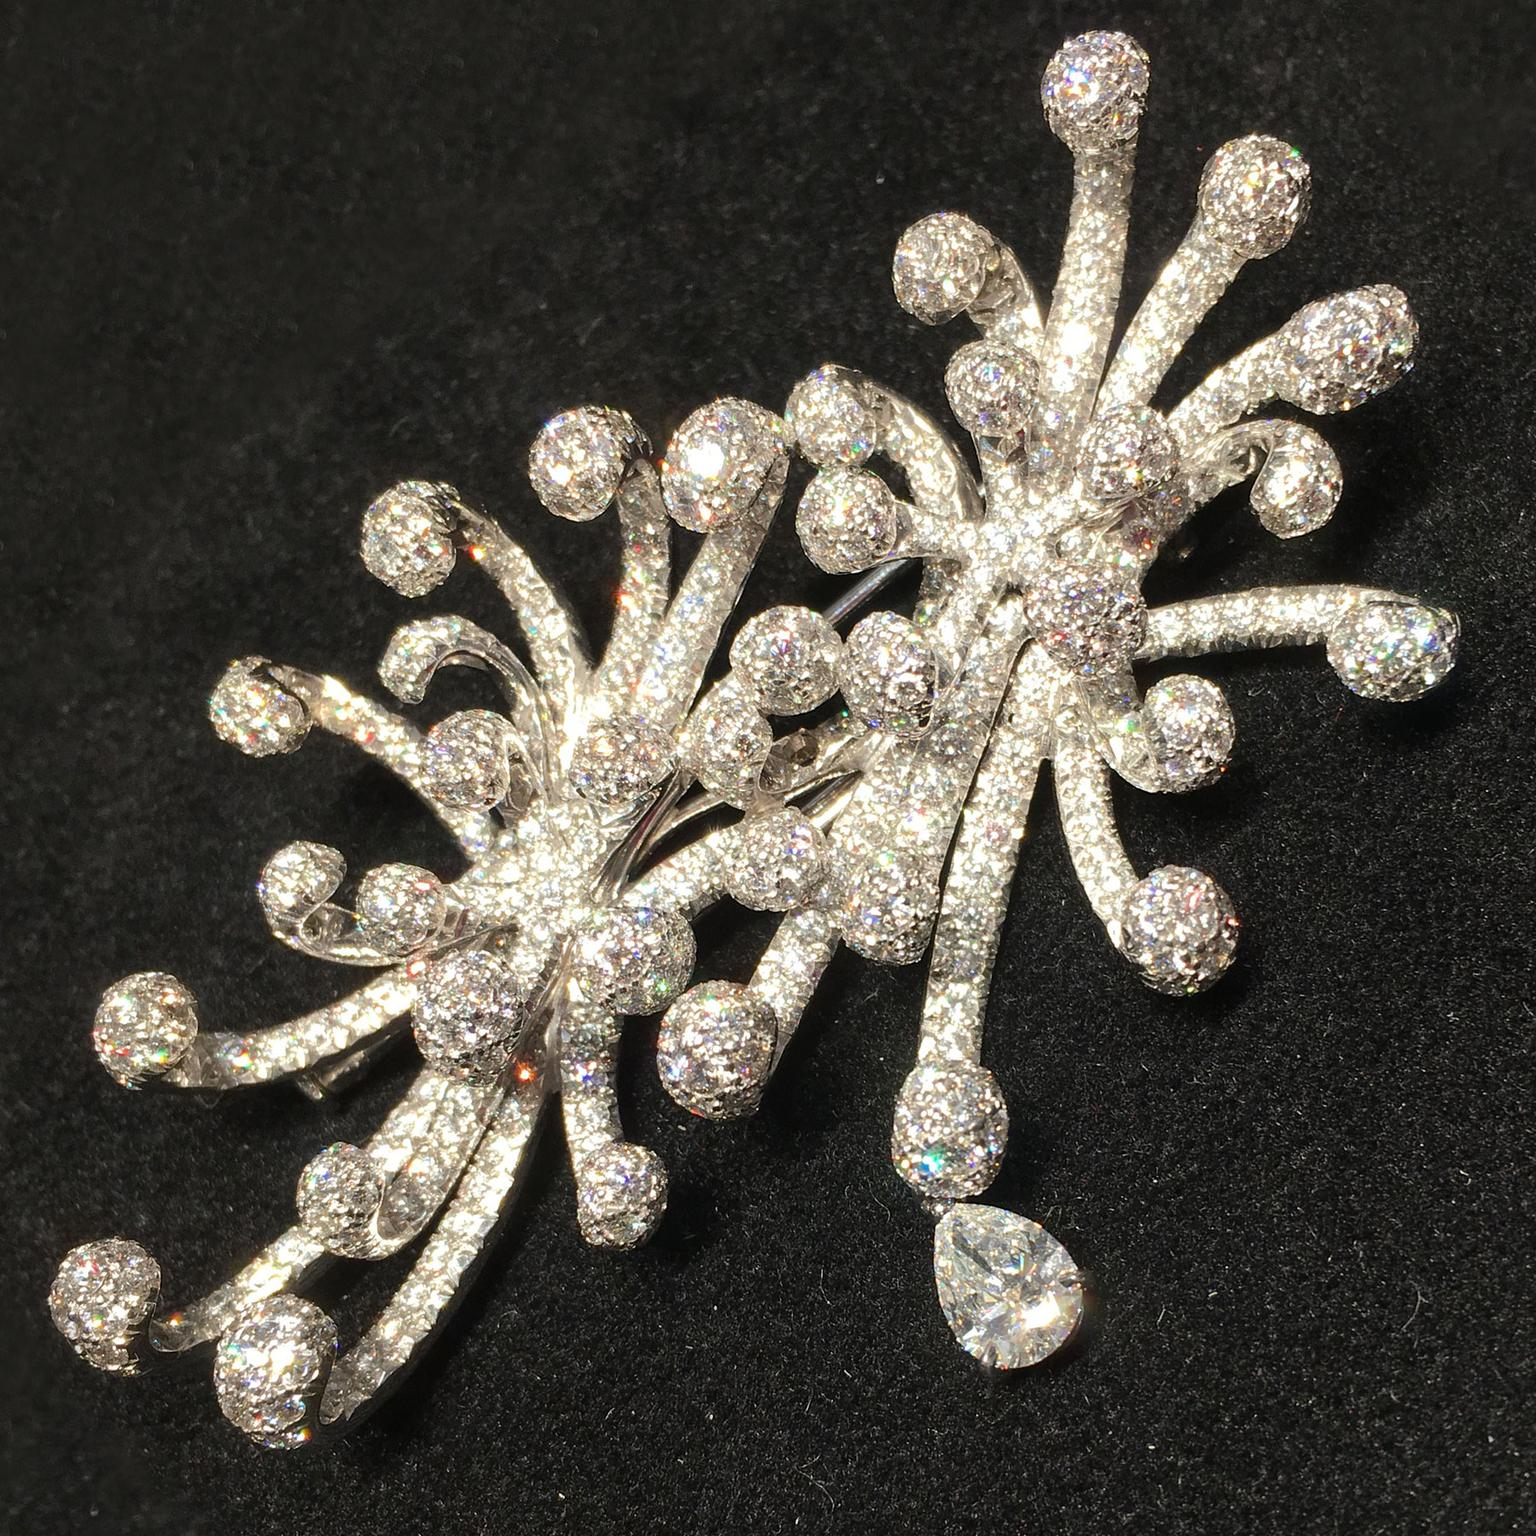 Dior Cygne brooch with diamonds